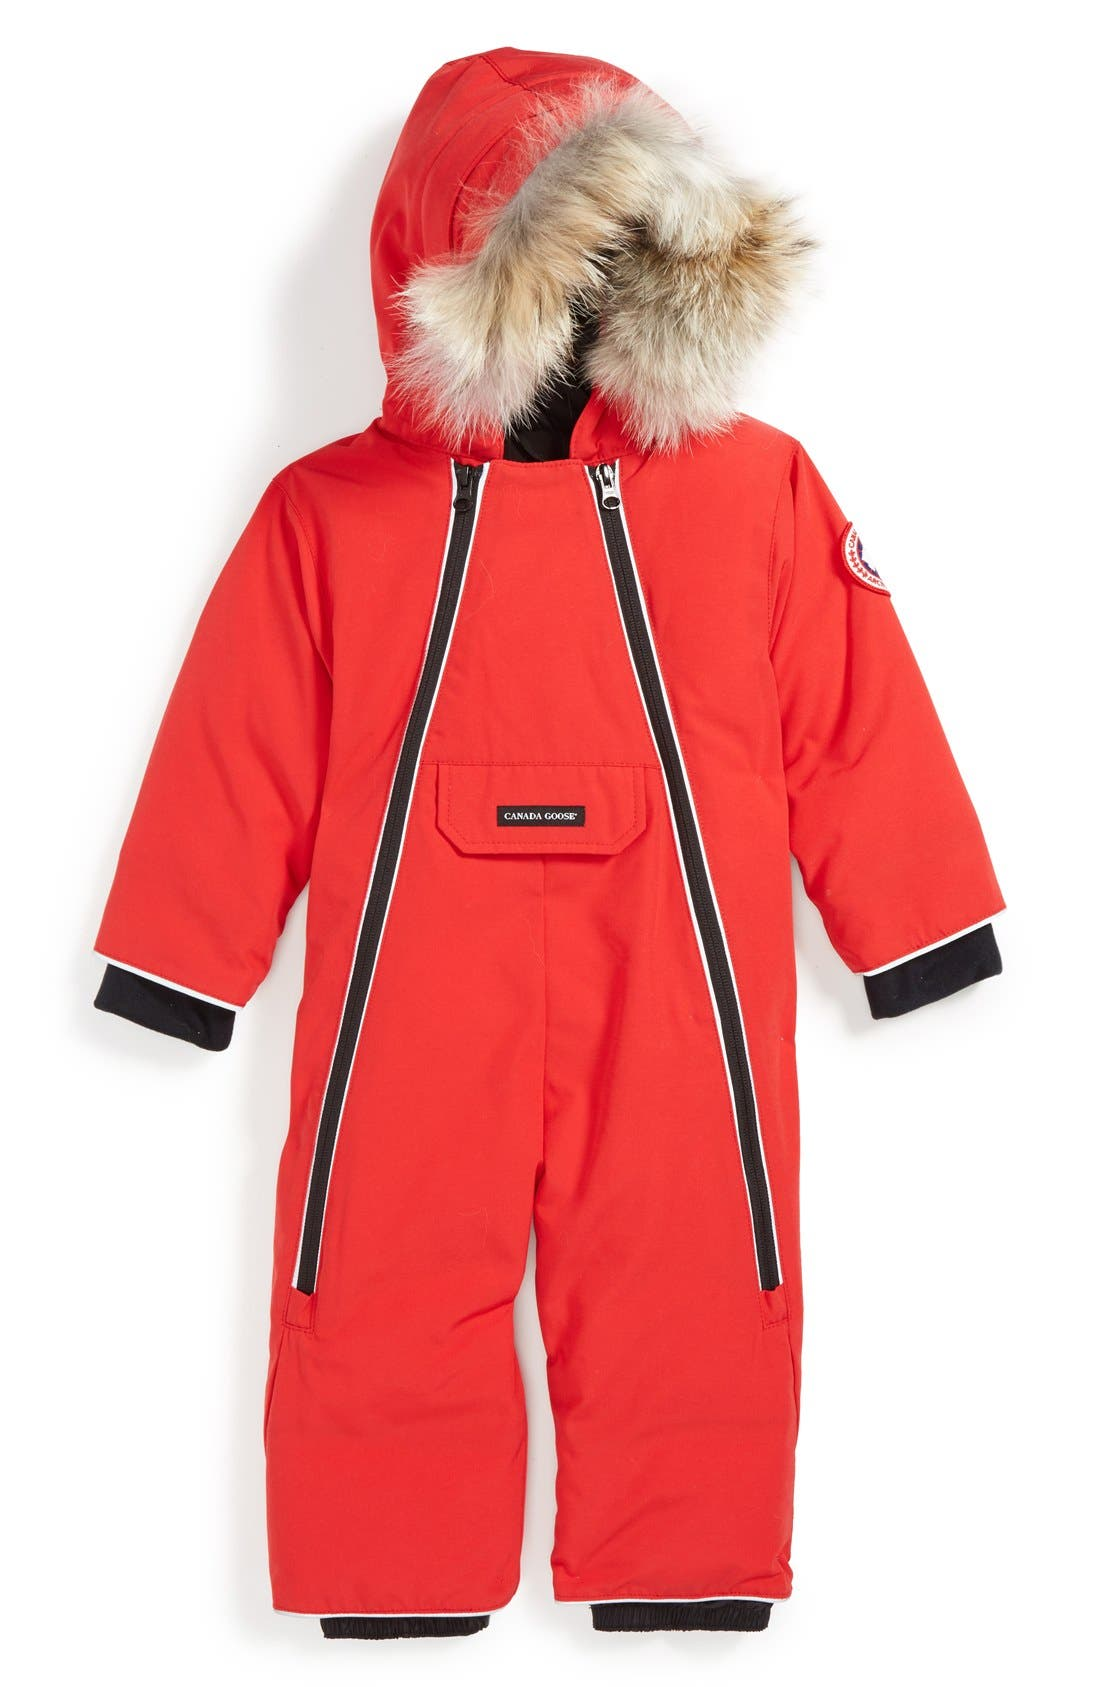 Canada Goose 'Lamb' Down Snowsuit with Genuine Coyote Fur Trim (Baby)